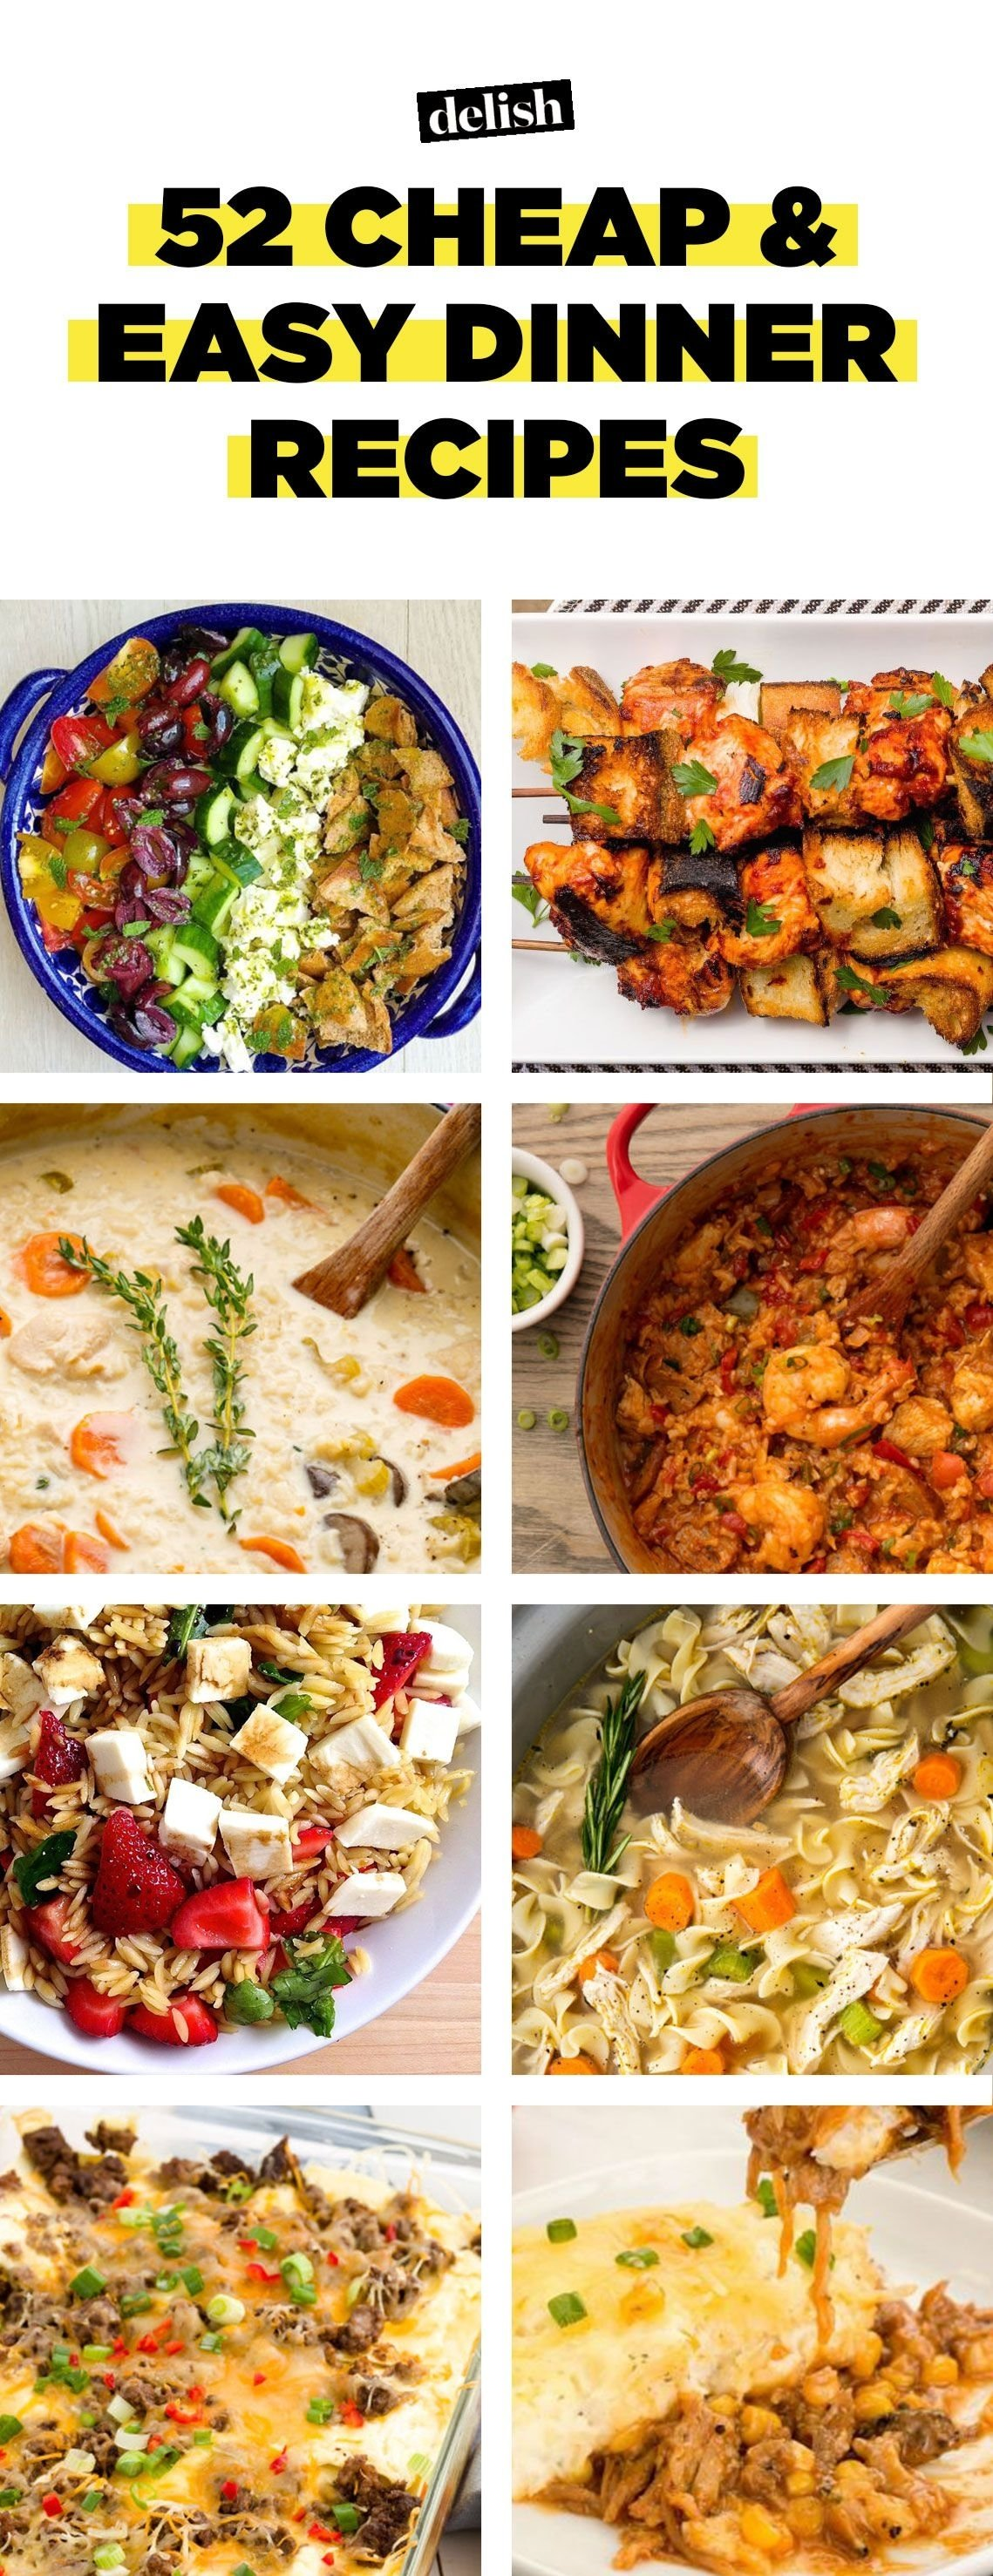 10 Amazing Cheap Meal Ideas For 4 52 easy cheap recipes inexpensive food ideas delish 12 2021